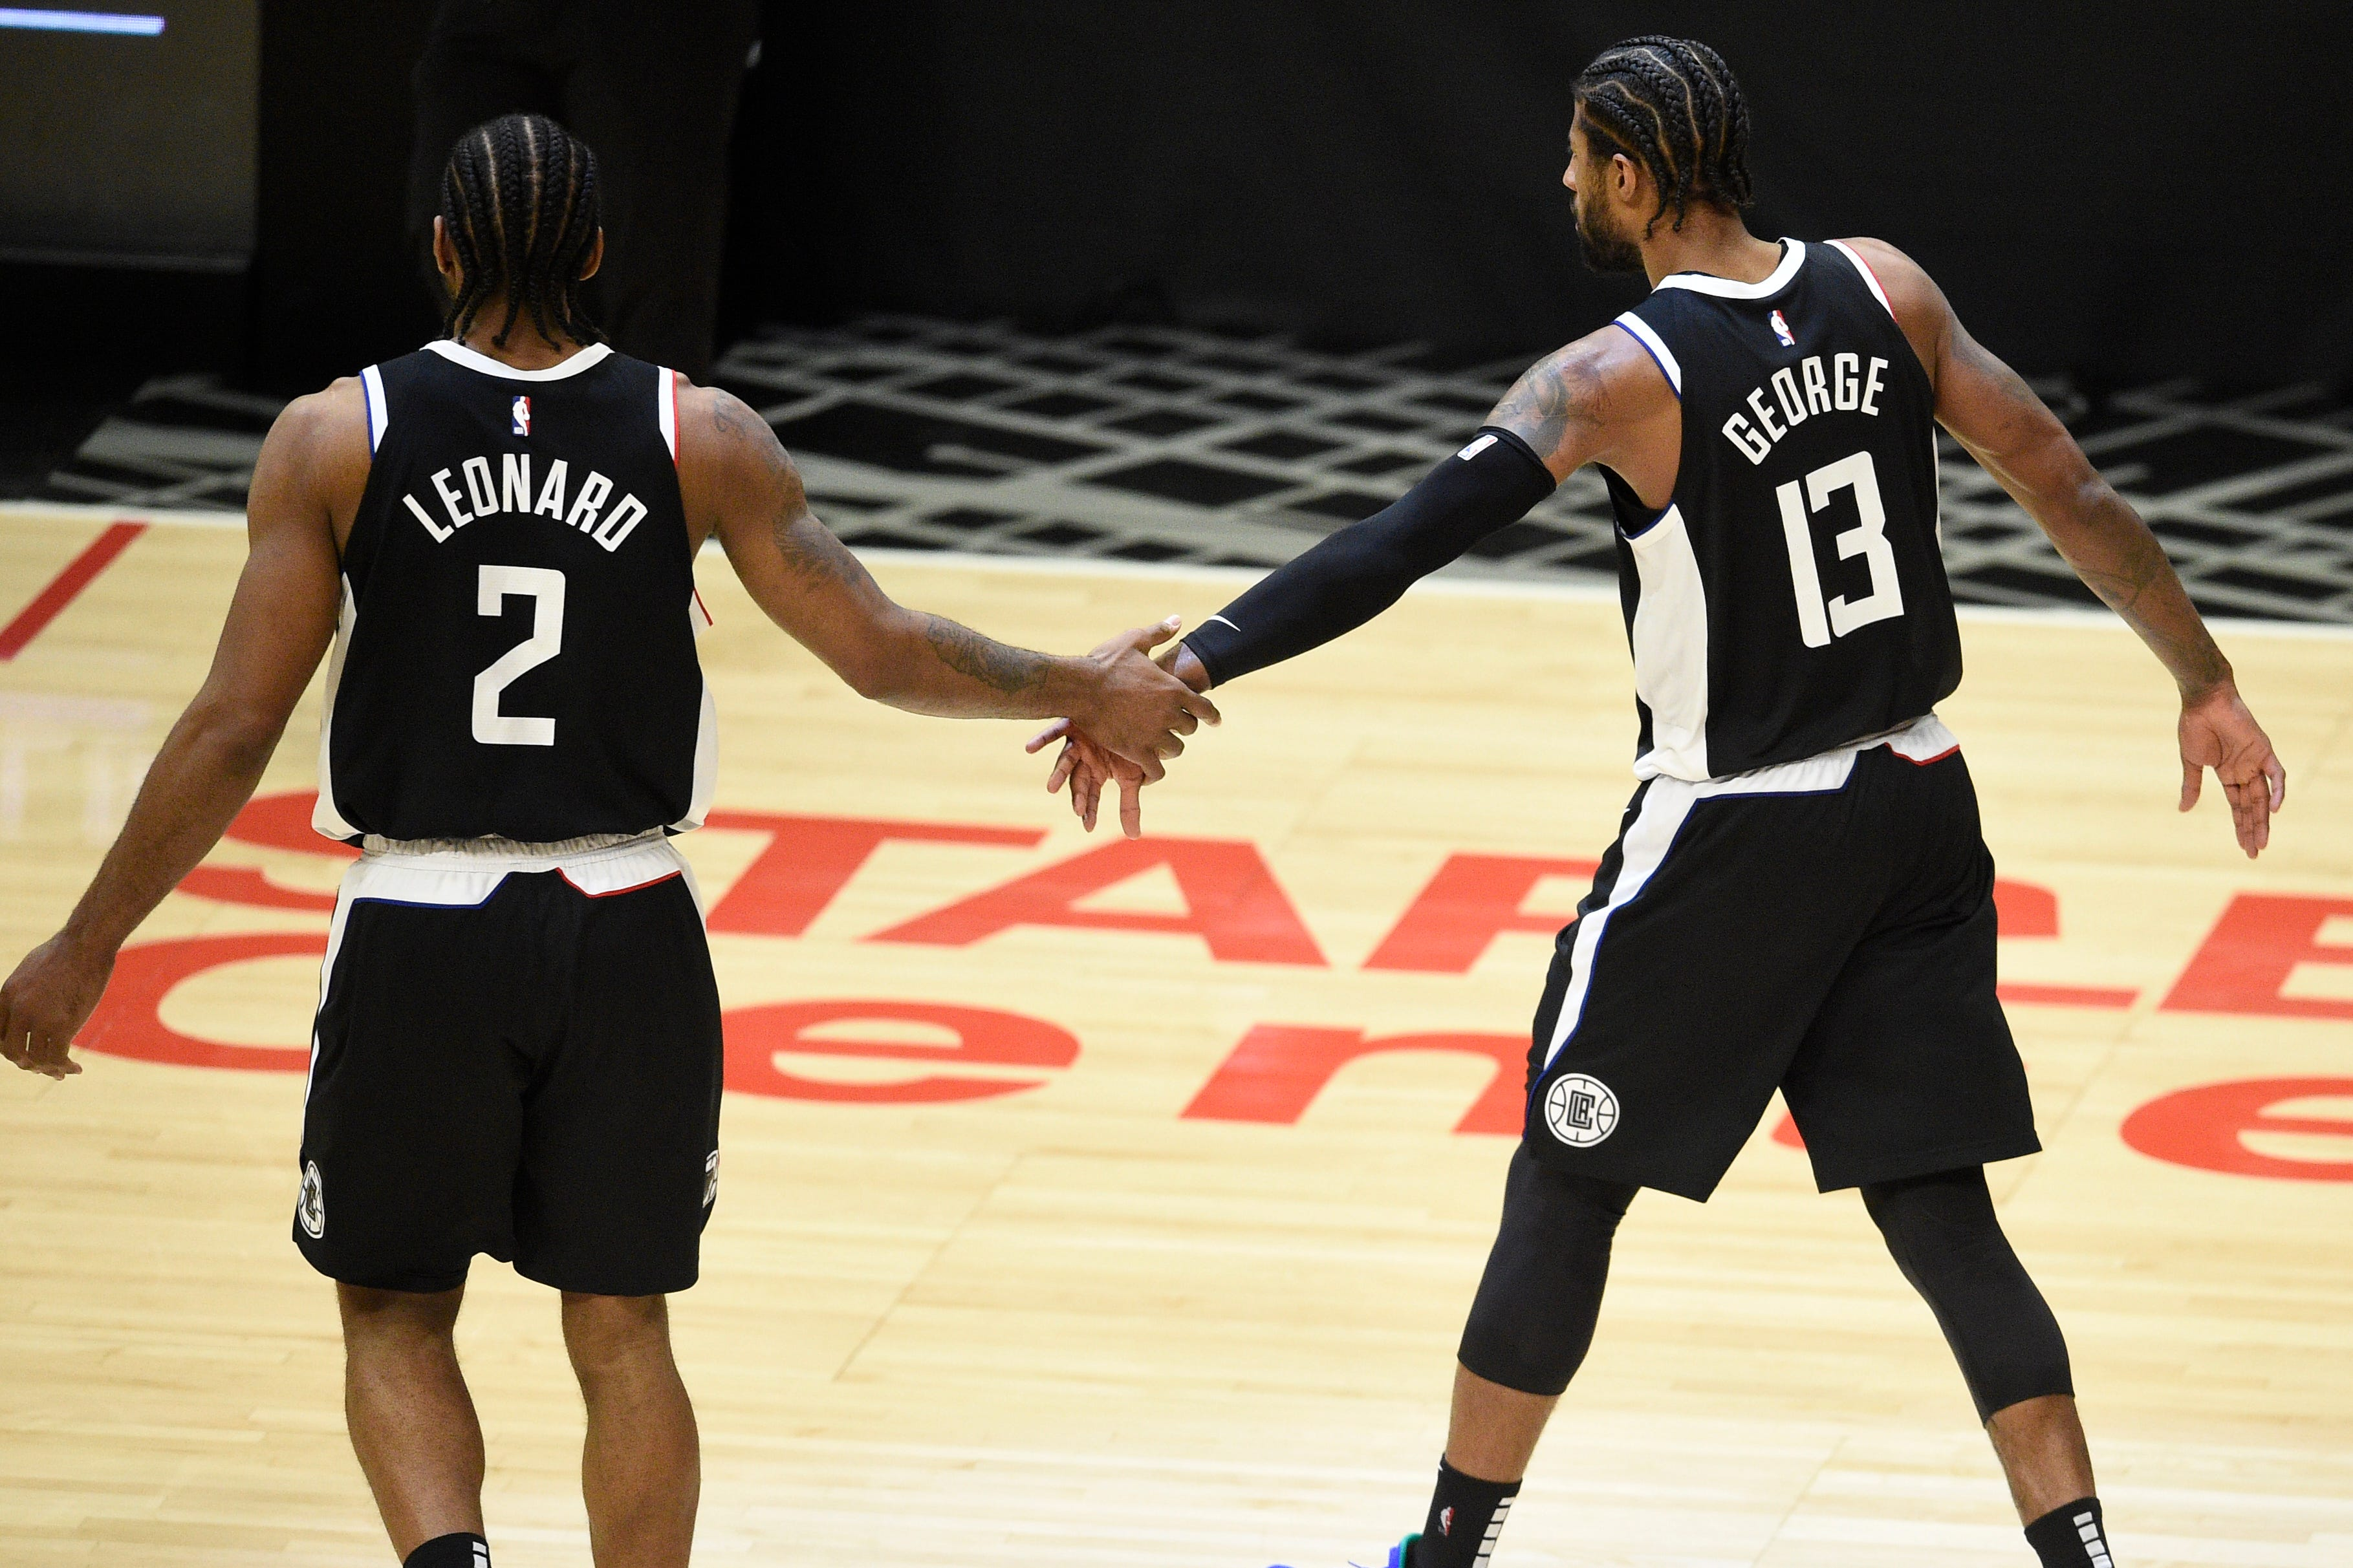 Opinion: Clippers' Kawhi Leonard, Paul George finally show what they can be as a duo in Game 3 vs. Jazz